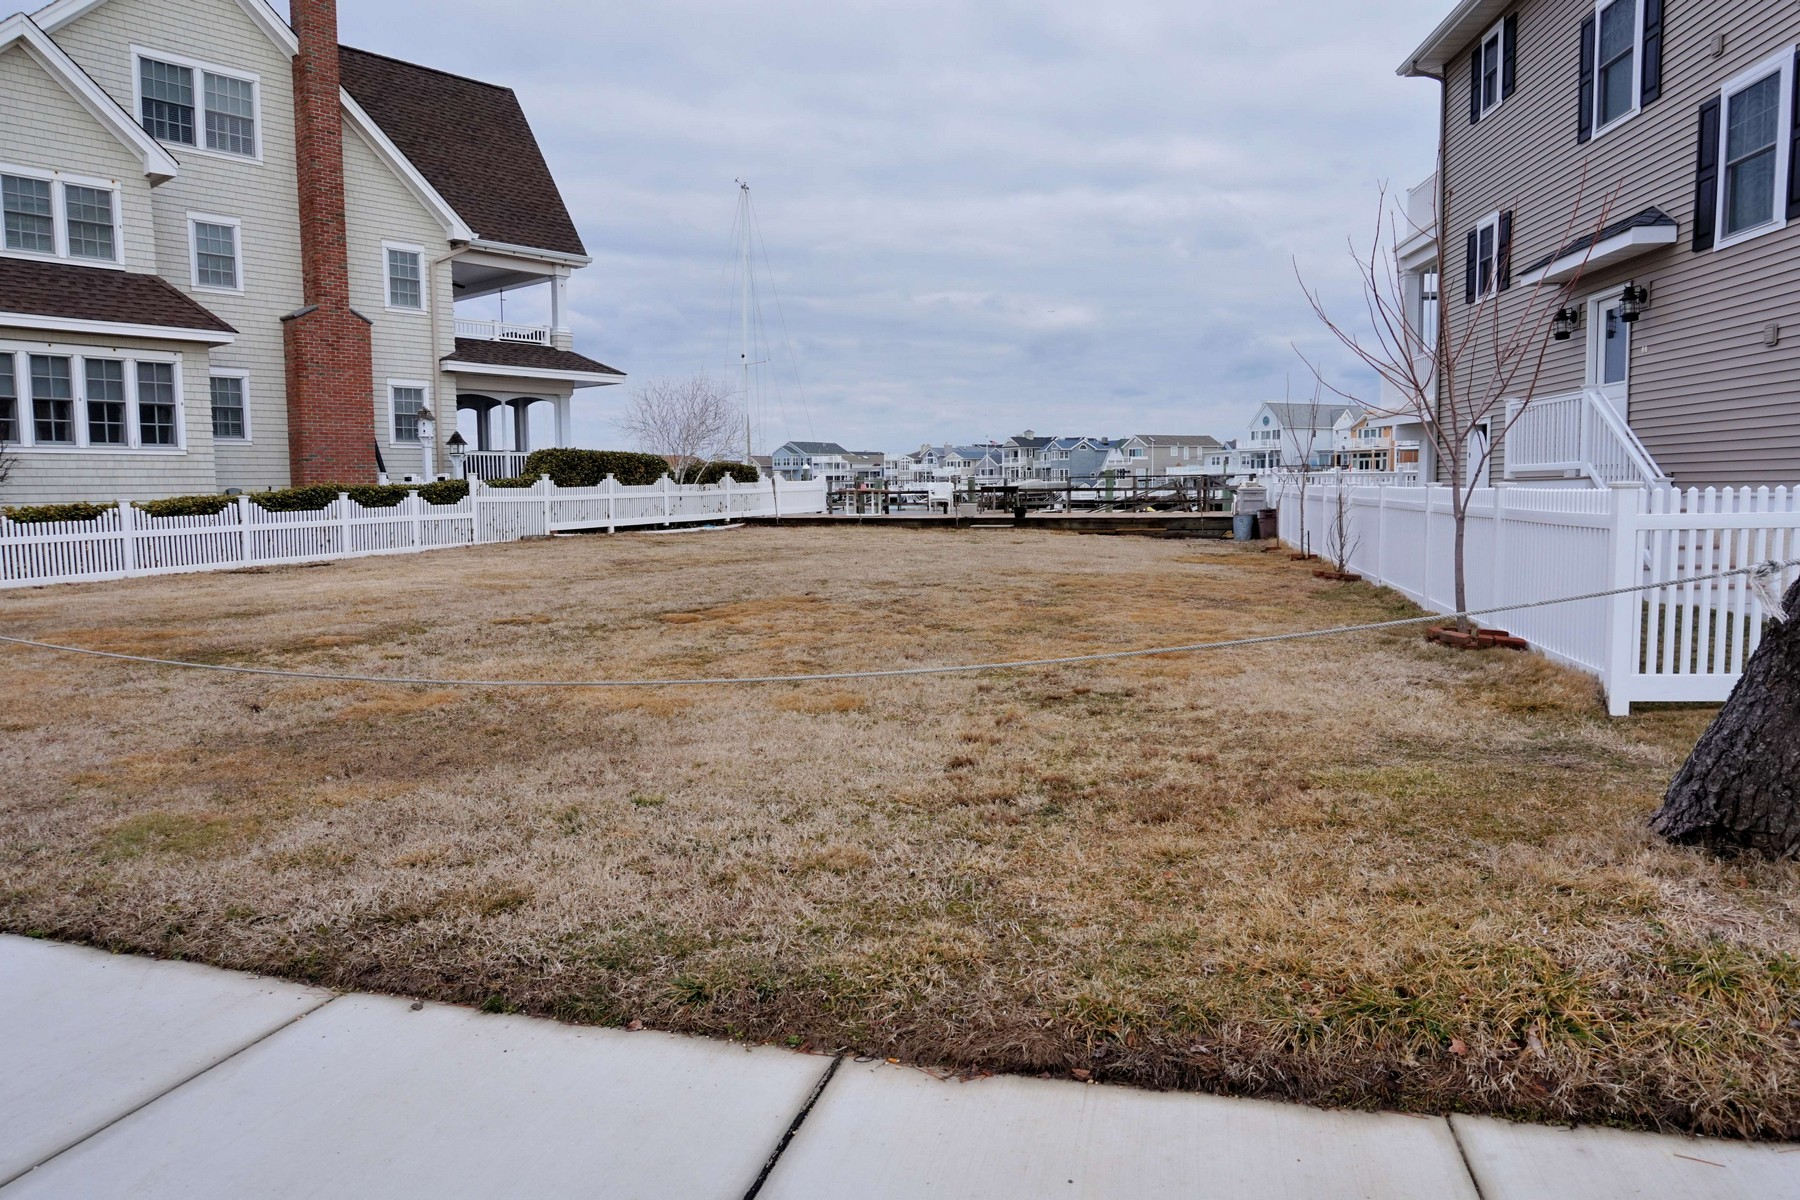 Land for Sale at Large Bay Front Lot 1 W 18th Steet Ocean City, New Jersey, 08226 United States